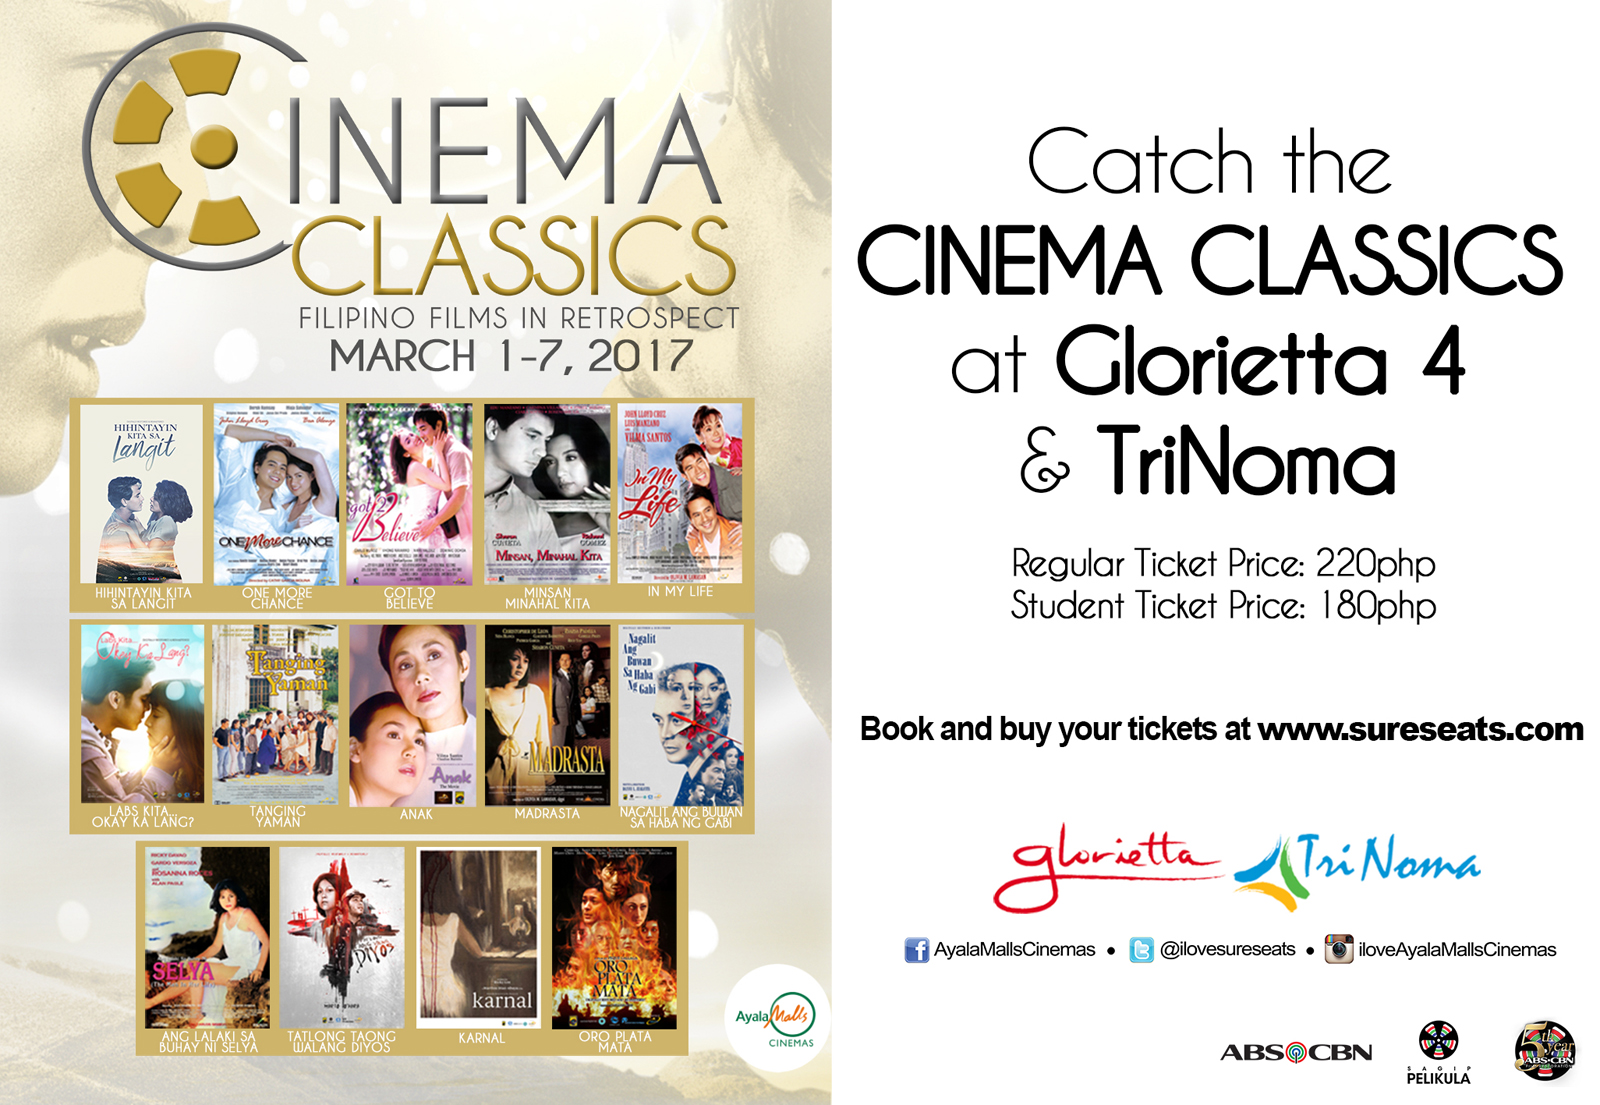 Manila life february 2017 after the success of the cinema classics at up town center early this january ayala malls cinemas in partnership with abs cbn film restorations group stopboris Gallery